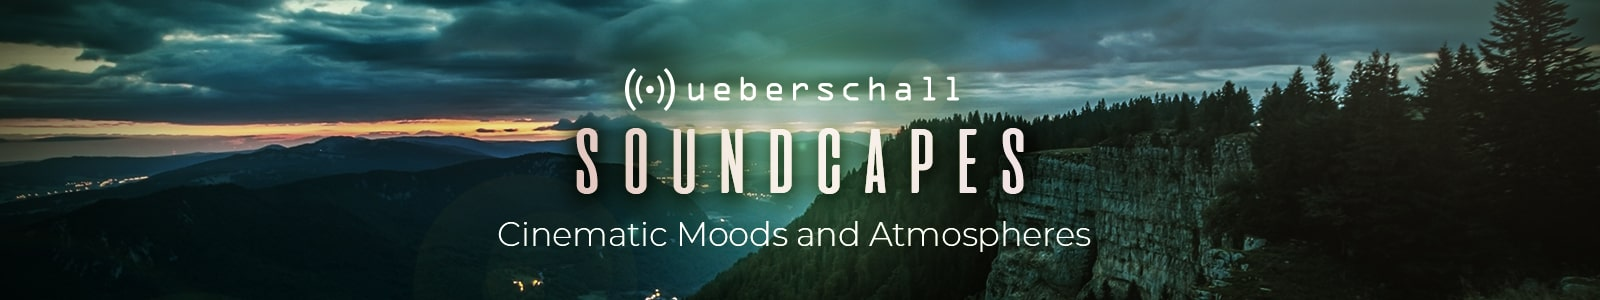 soundscapes by ueberschall